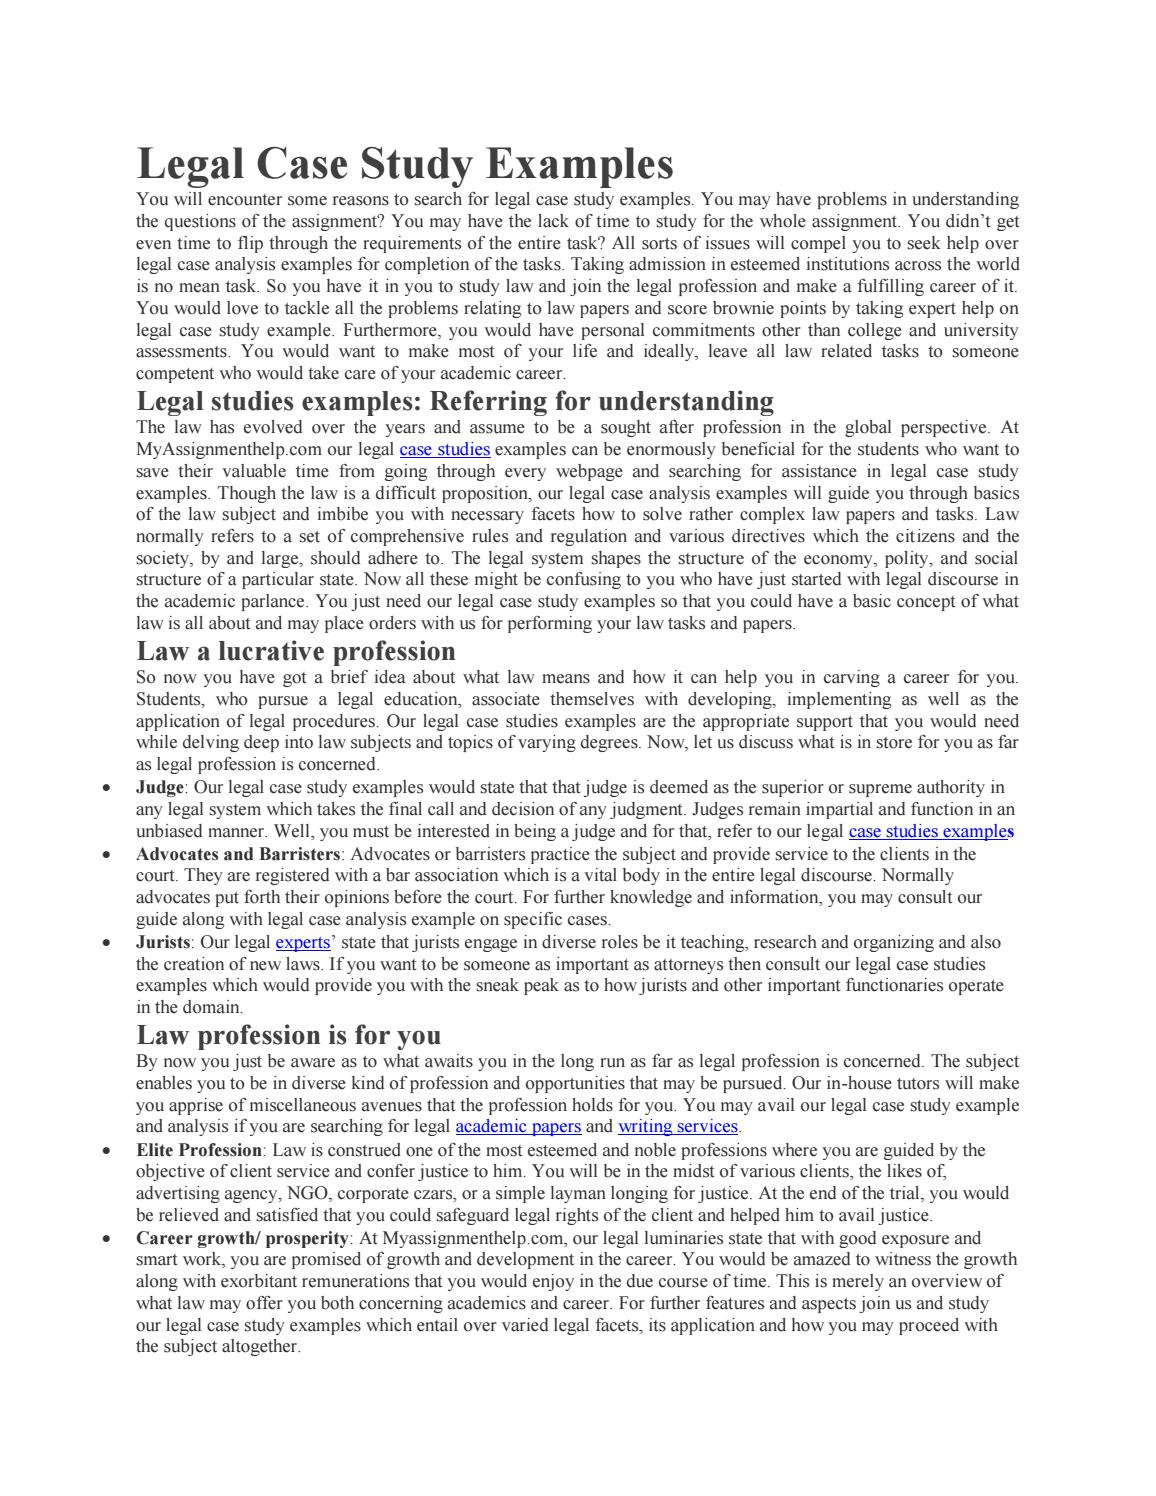 Case study analysis paper examples